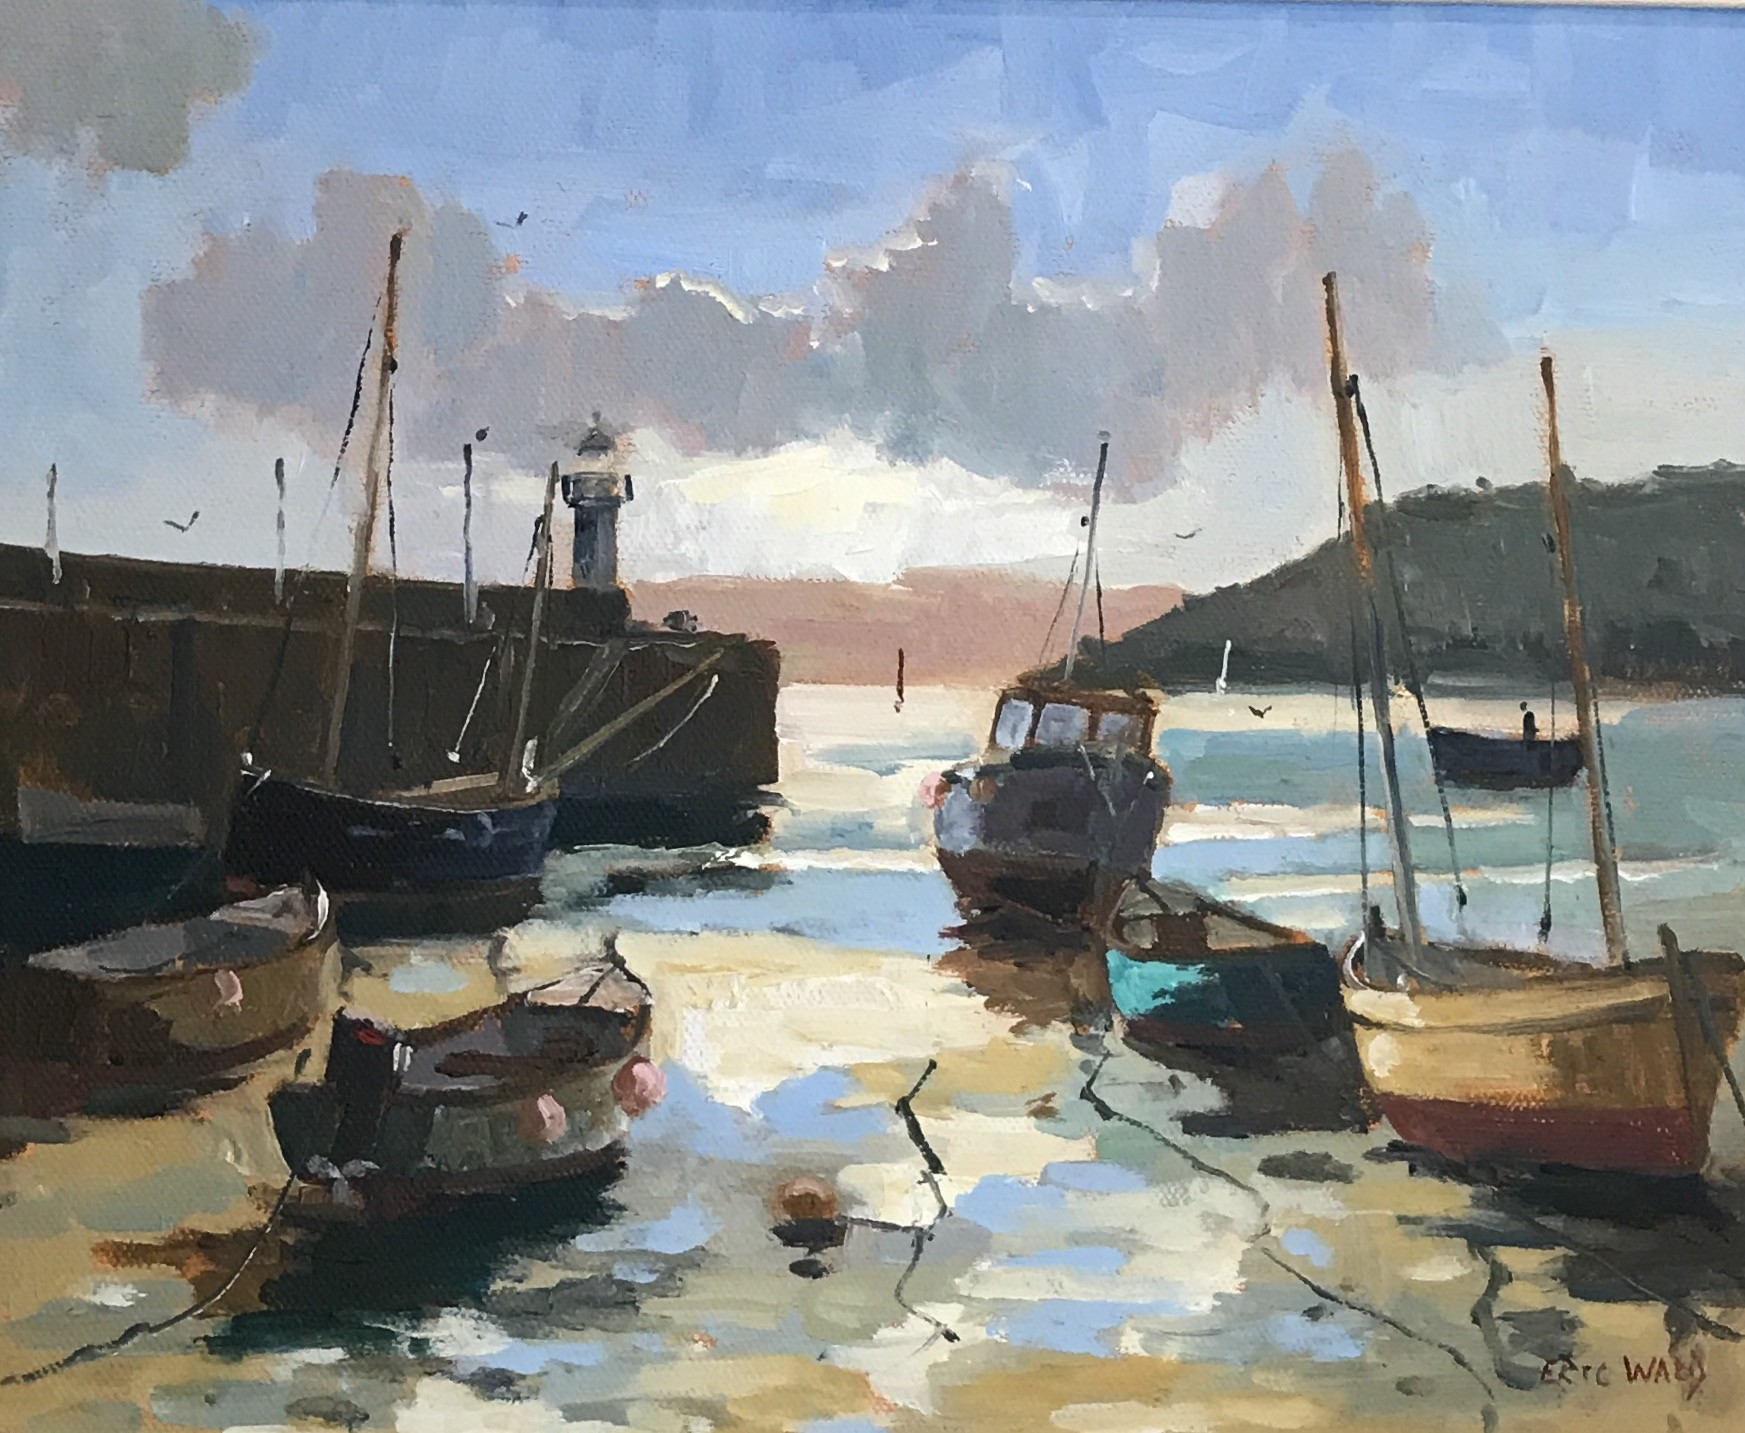 "<span class=""link fancybox-details-link""><a href=""/artists/29-eric-ward-%28b.1945%29/works/24-eric-ward-b.1945-cornish-harbour-at-low-tide/"">View Detail Page</a></span><div class=""artist""><strong>Eric Ward (b.1945)</strong></div> <div class=""title""><em>Cornish harbour at low tide</em></div> <div class=""medium"">Oil on canvas</div> <div class=""dimensions"">25 x 30 cm</div>"